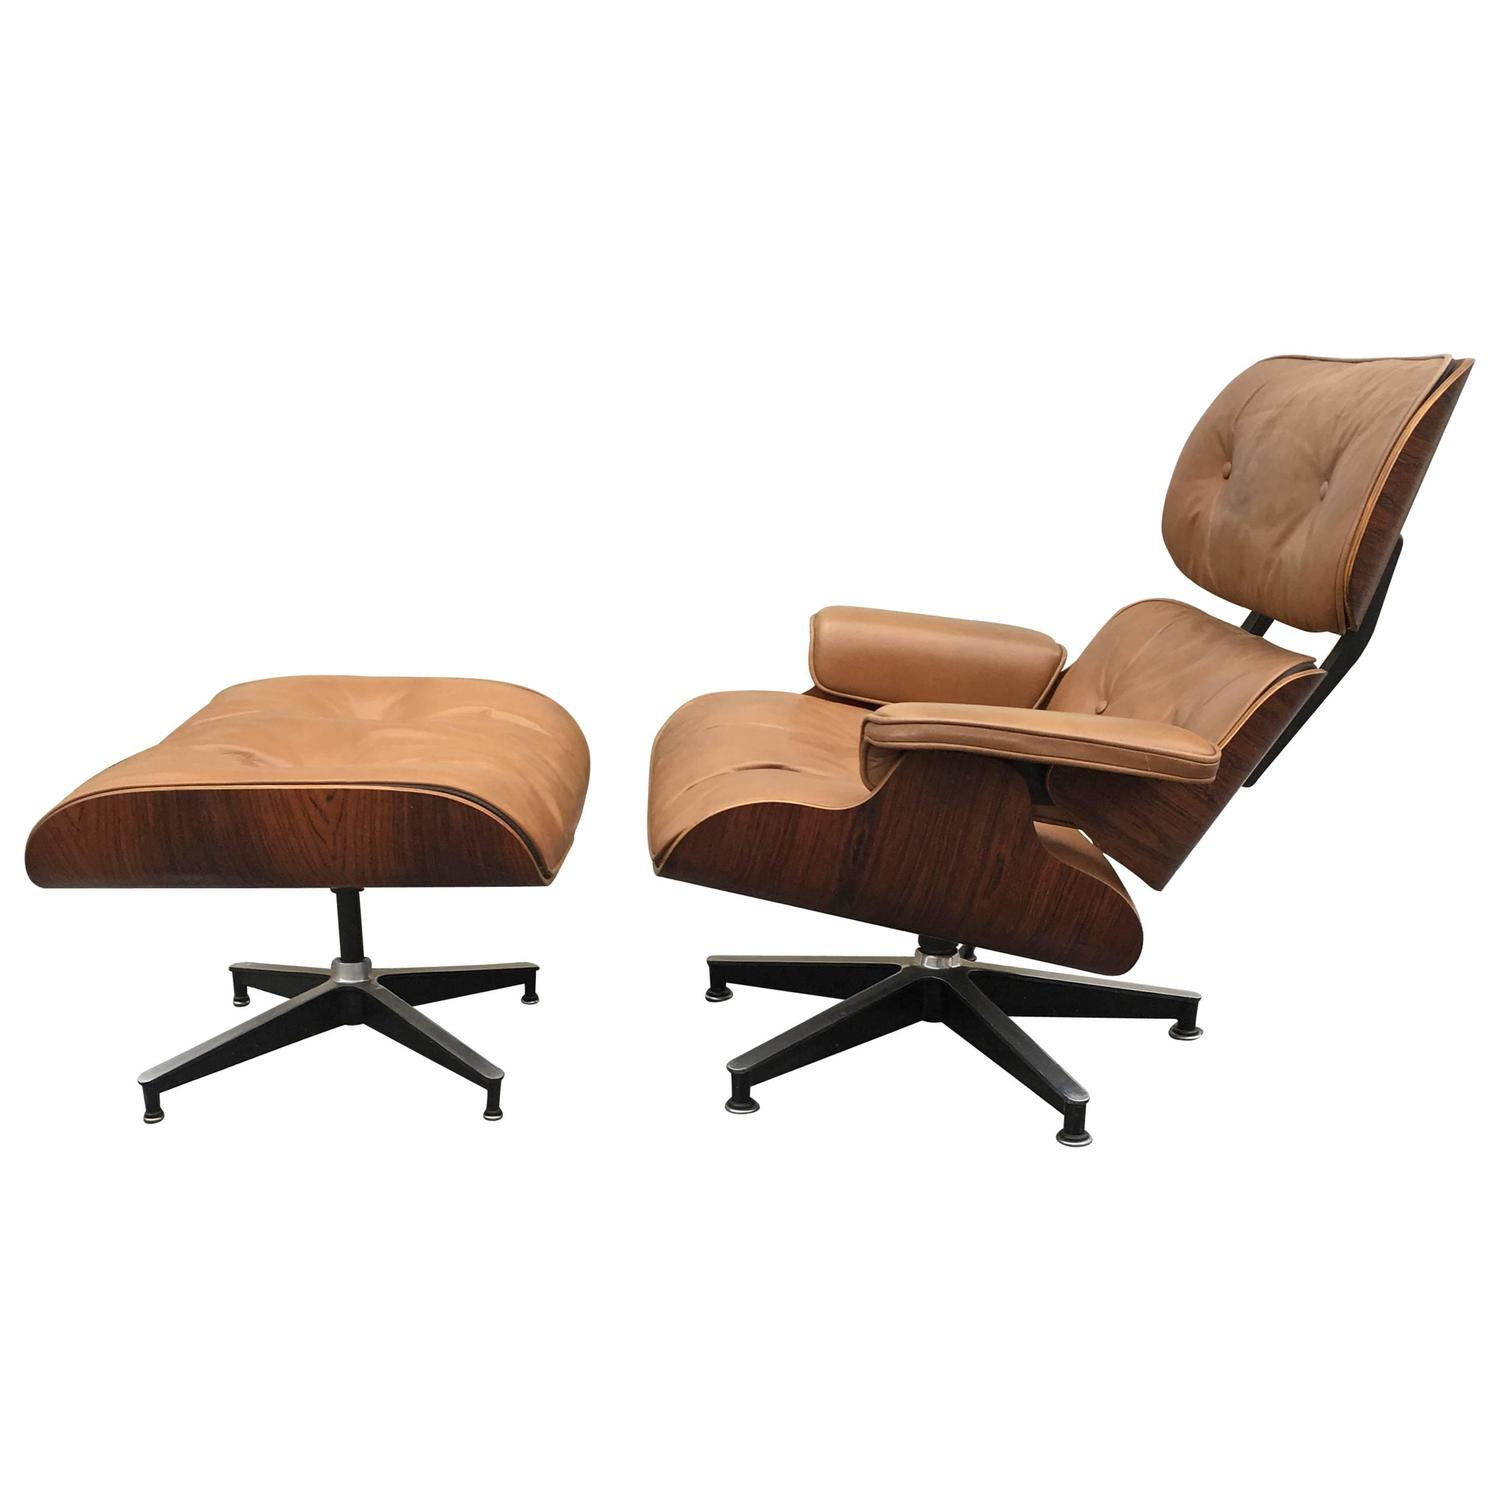 Tan rosewood herman miller eames lounge chair and ottoman - Herman miller lounge chair and ottoman ...